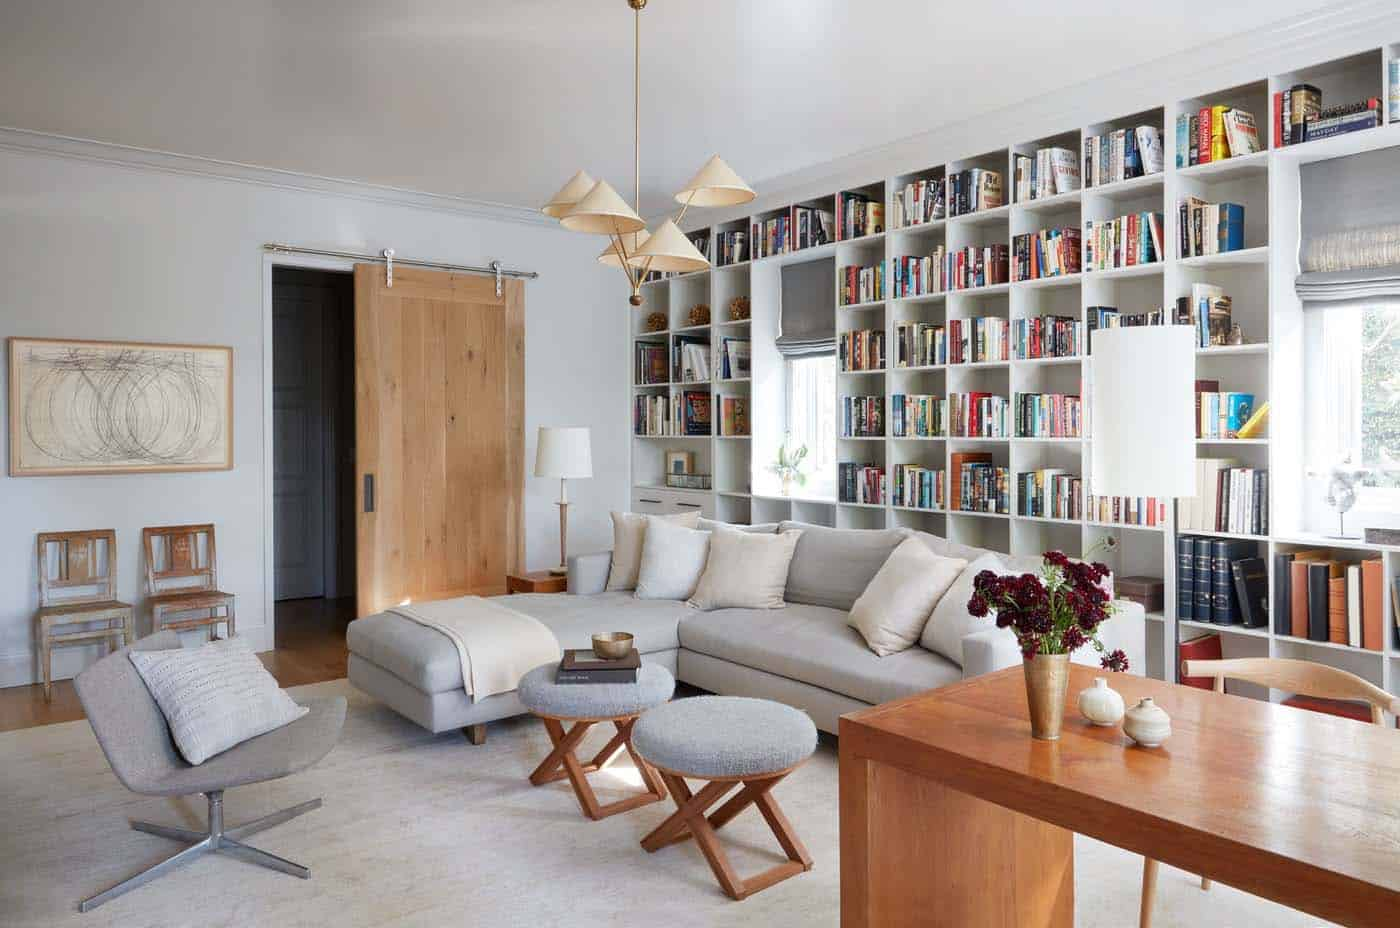 Historic Farmhouse Renovation-Ken Linsteadt Architects-10-1 Kindesign